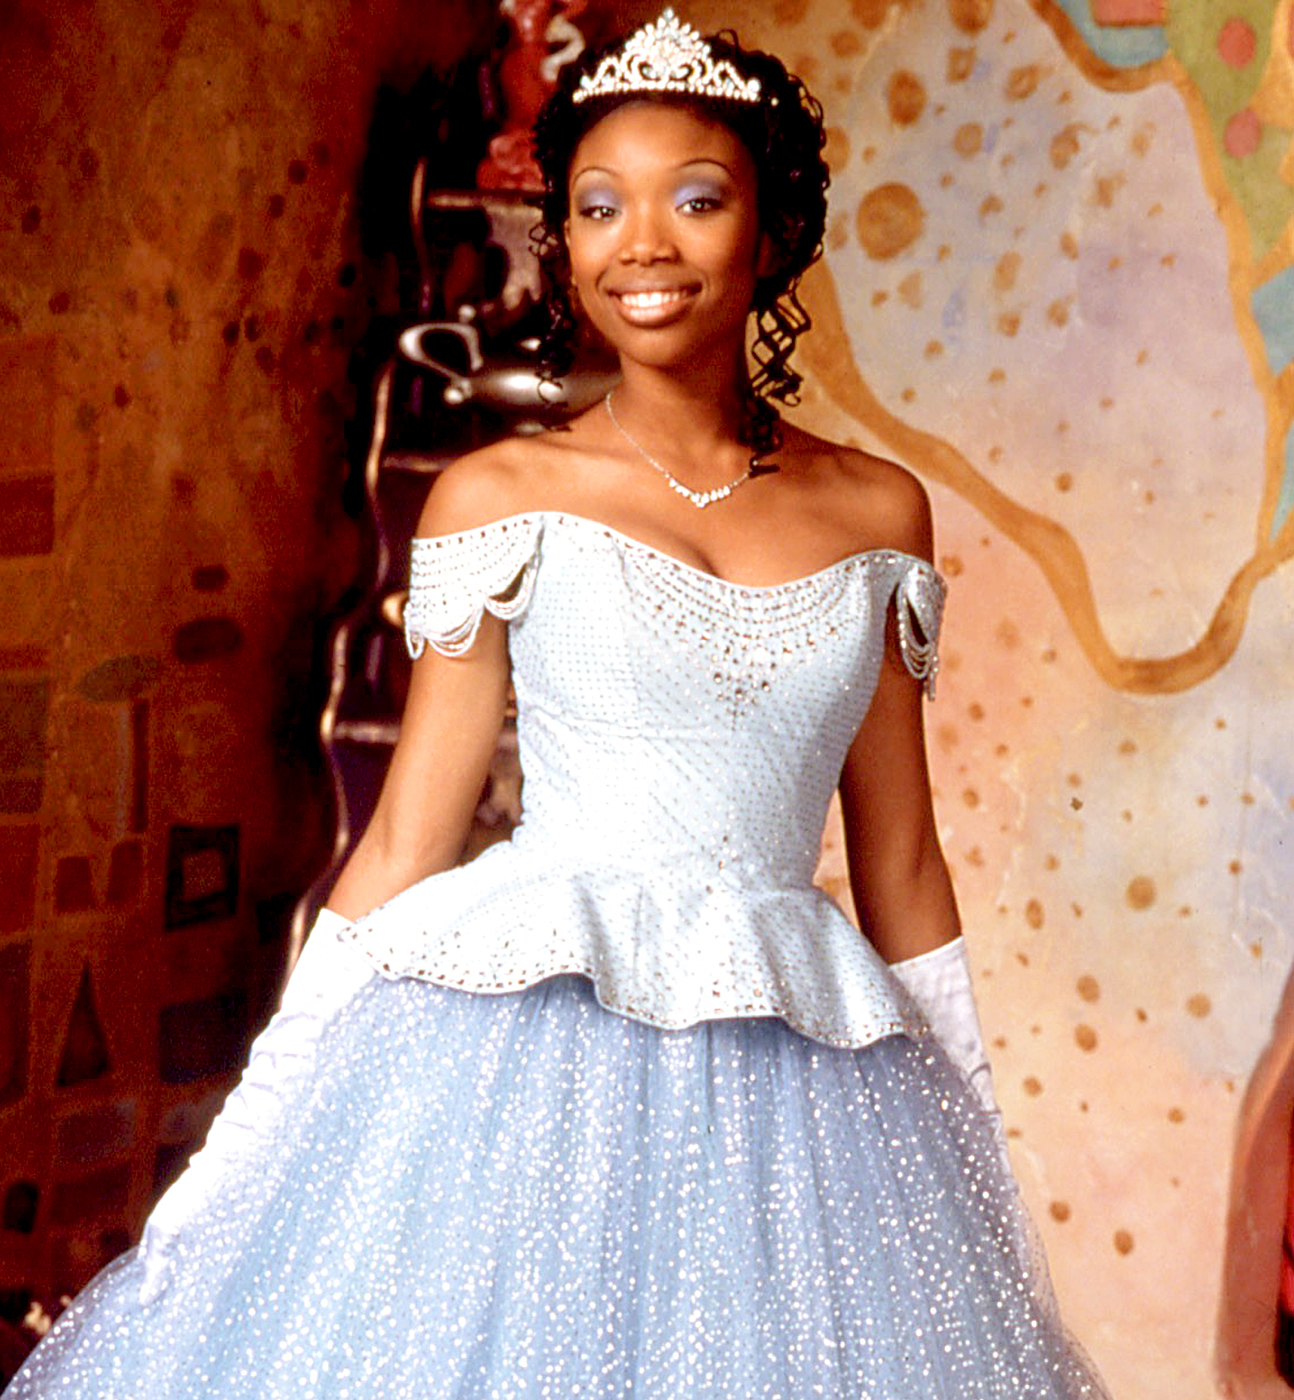 In 1997, the R&B superstar played the title role in Rodgers & Hammerstein's Cinderella . The all-star cast included Whitney Houston as the Fairy Godmother, Bernadette Peters as Cinderella's stepmother, Whoopi Goldberg as Queen Constantina and Victor Garber as King Maximillian.